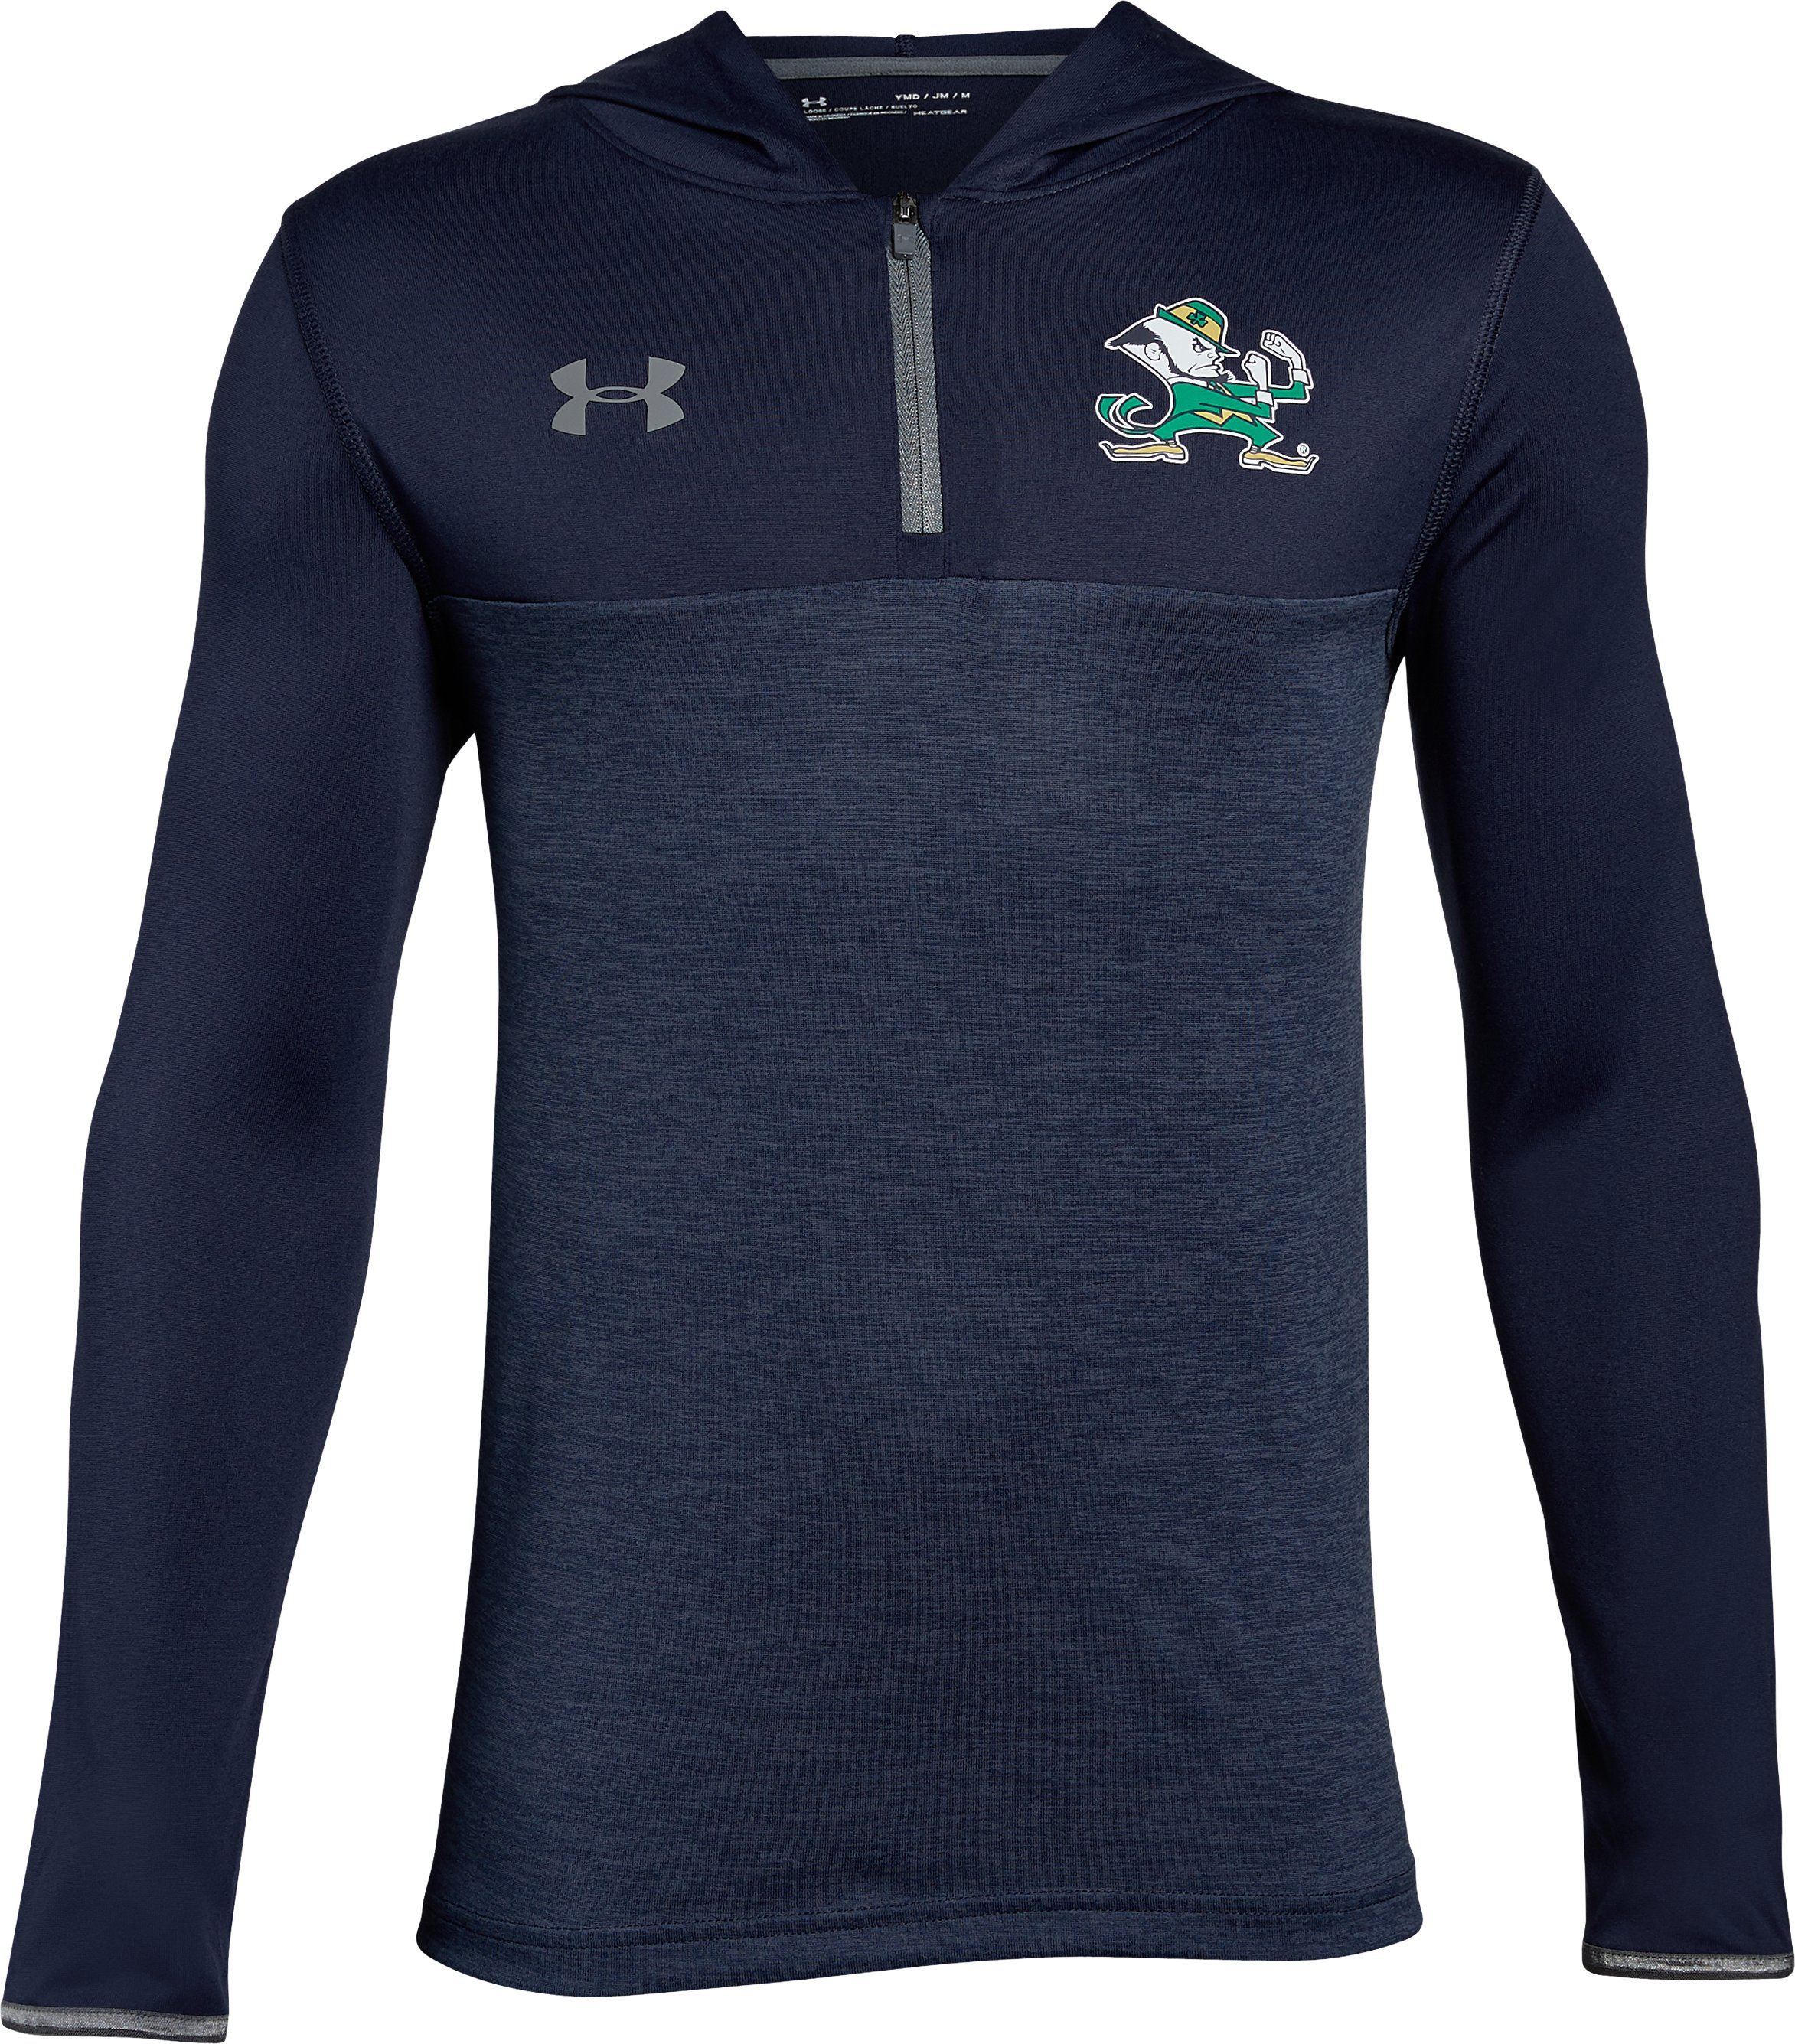 Boys' Notre Dame Tech ¼ Zip Hoodie, Midnight Navy